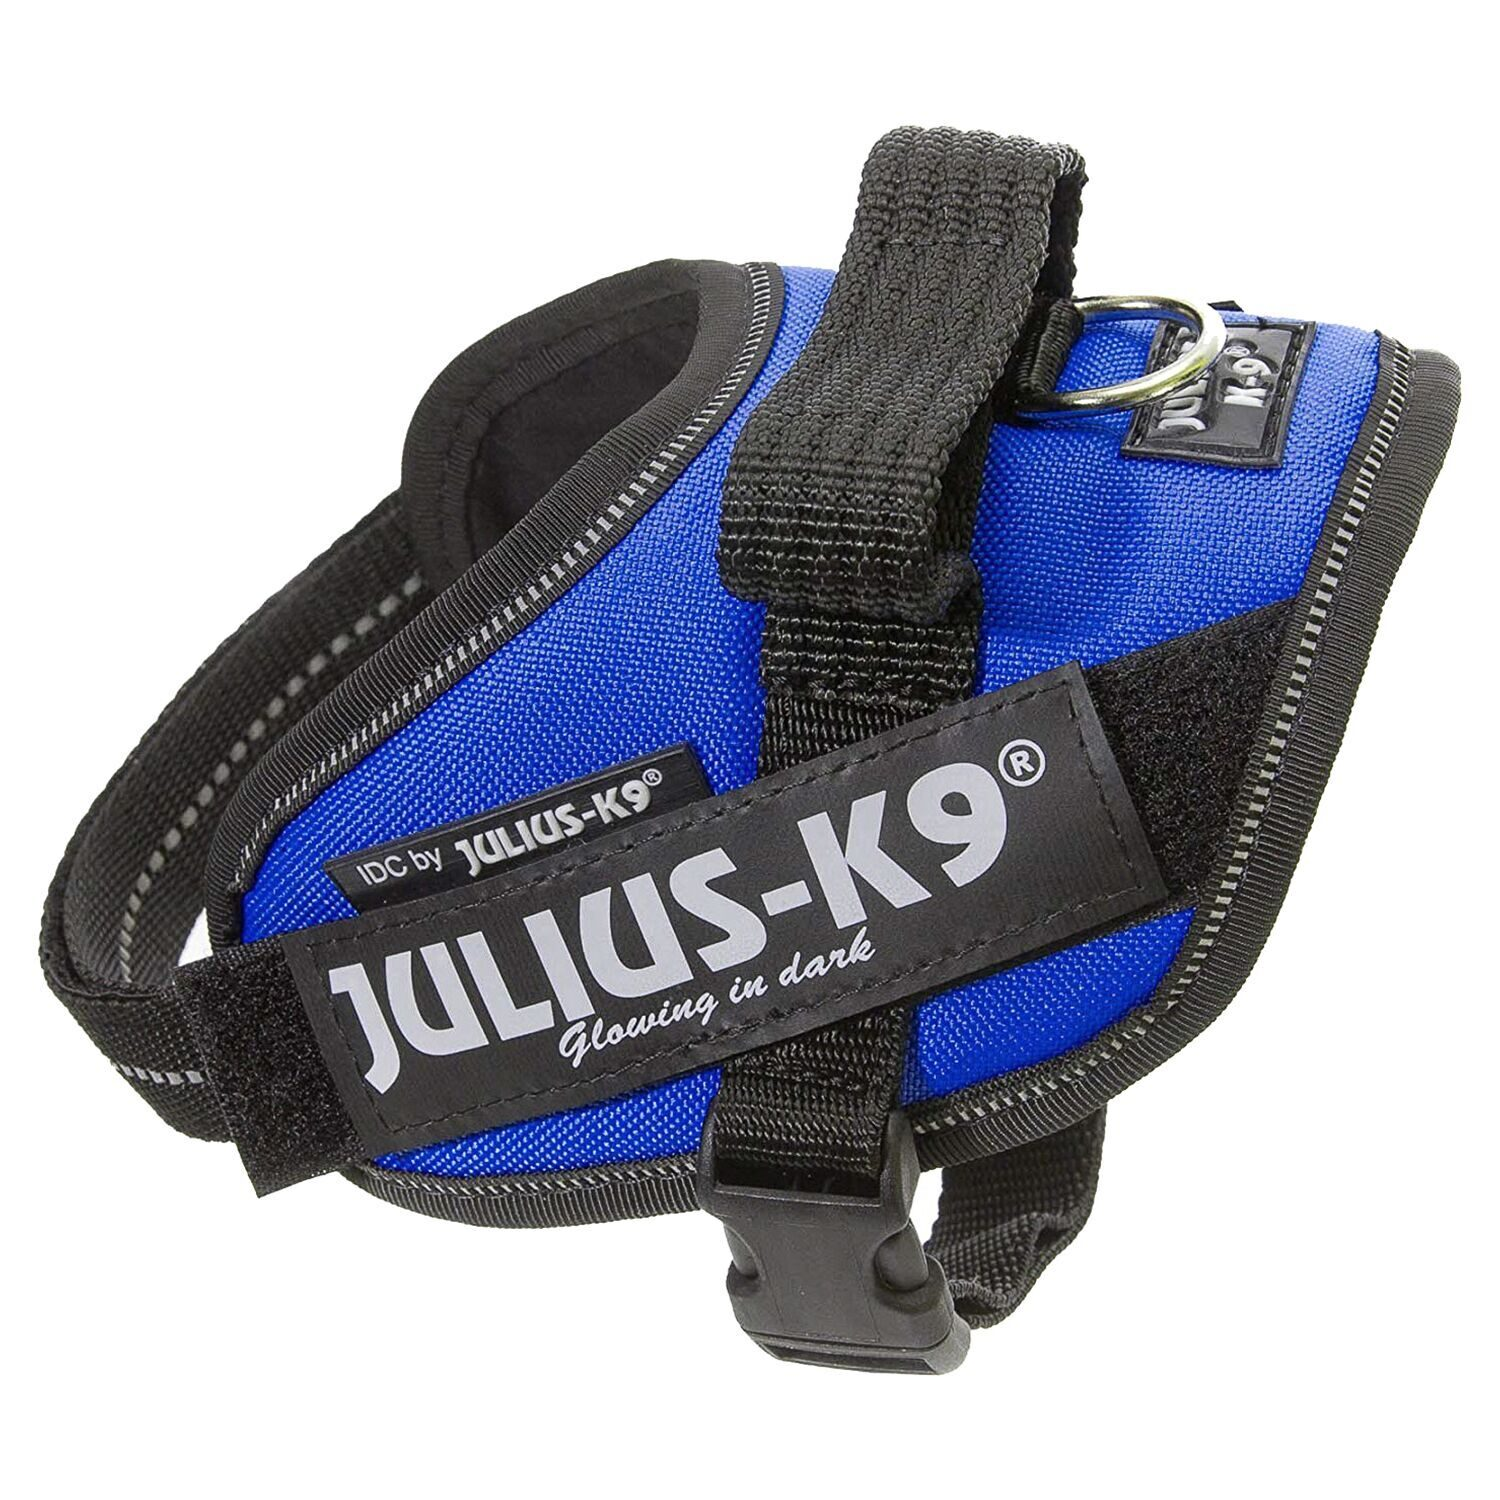 JULIUS-K9 шлейка для собак IDC-Powerharness Mini (49-67см 7-15кг), синий 3